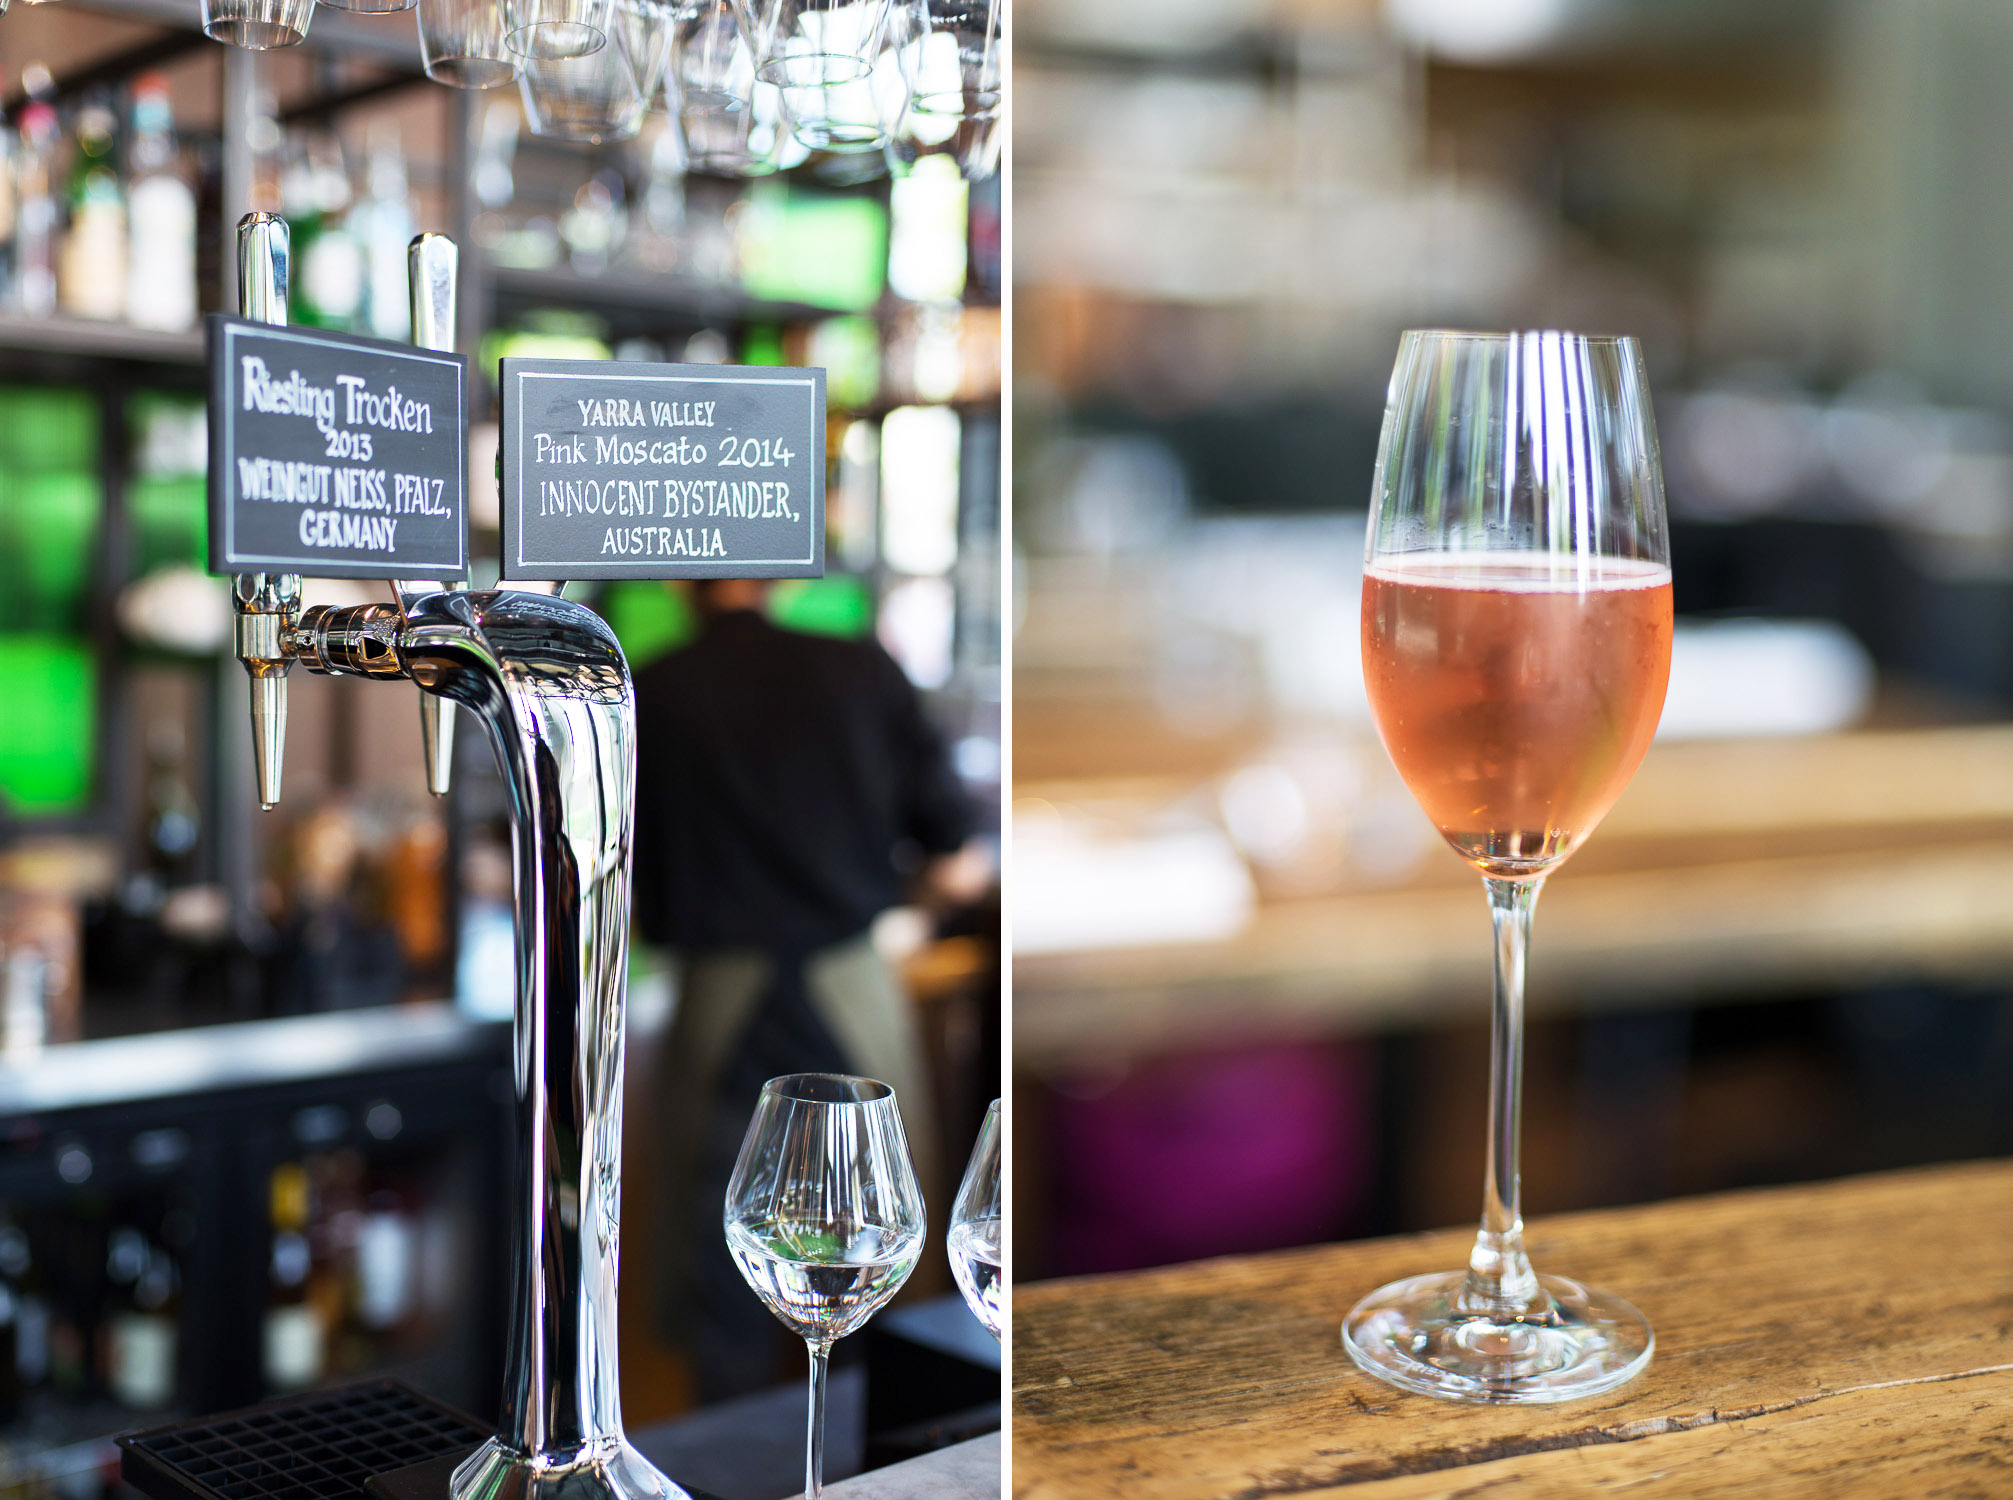 Delicious brunch and fine wines at Vinoteca Kings Cross in London